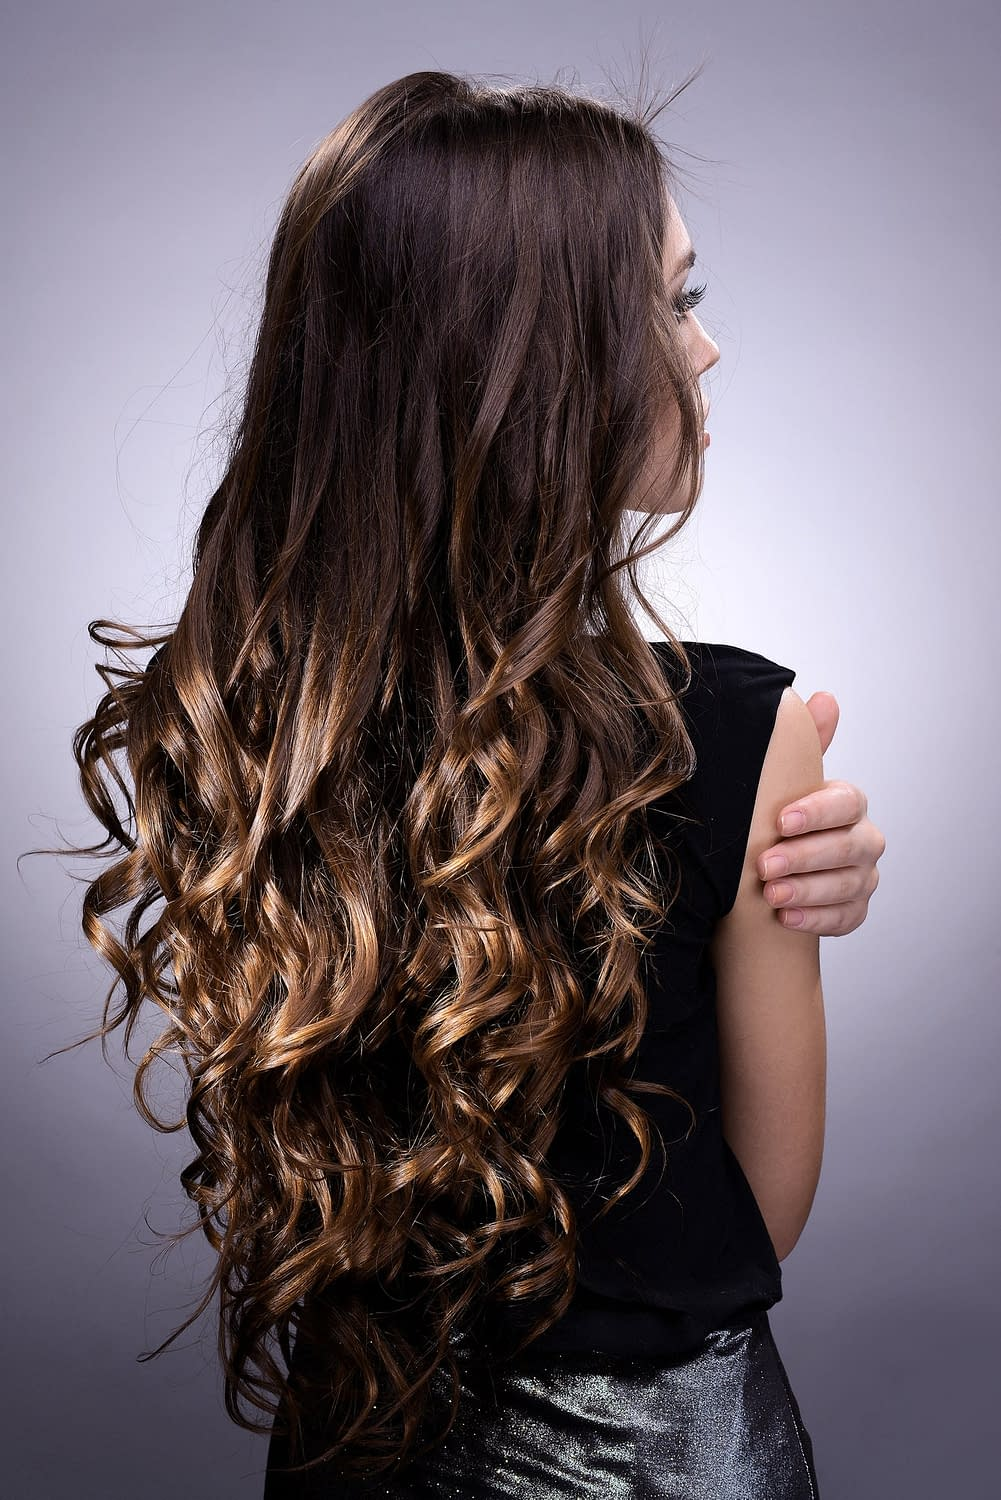 Article: How to get long luscious locks